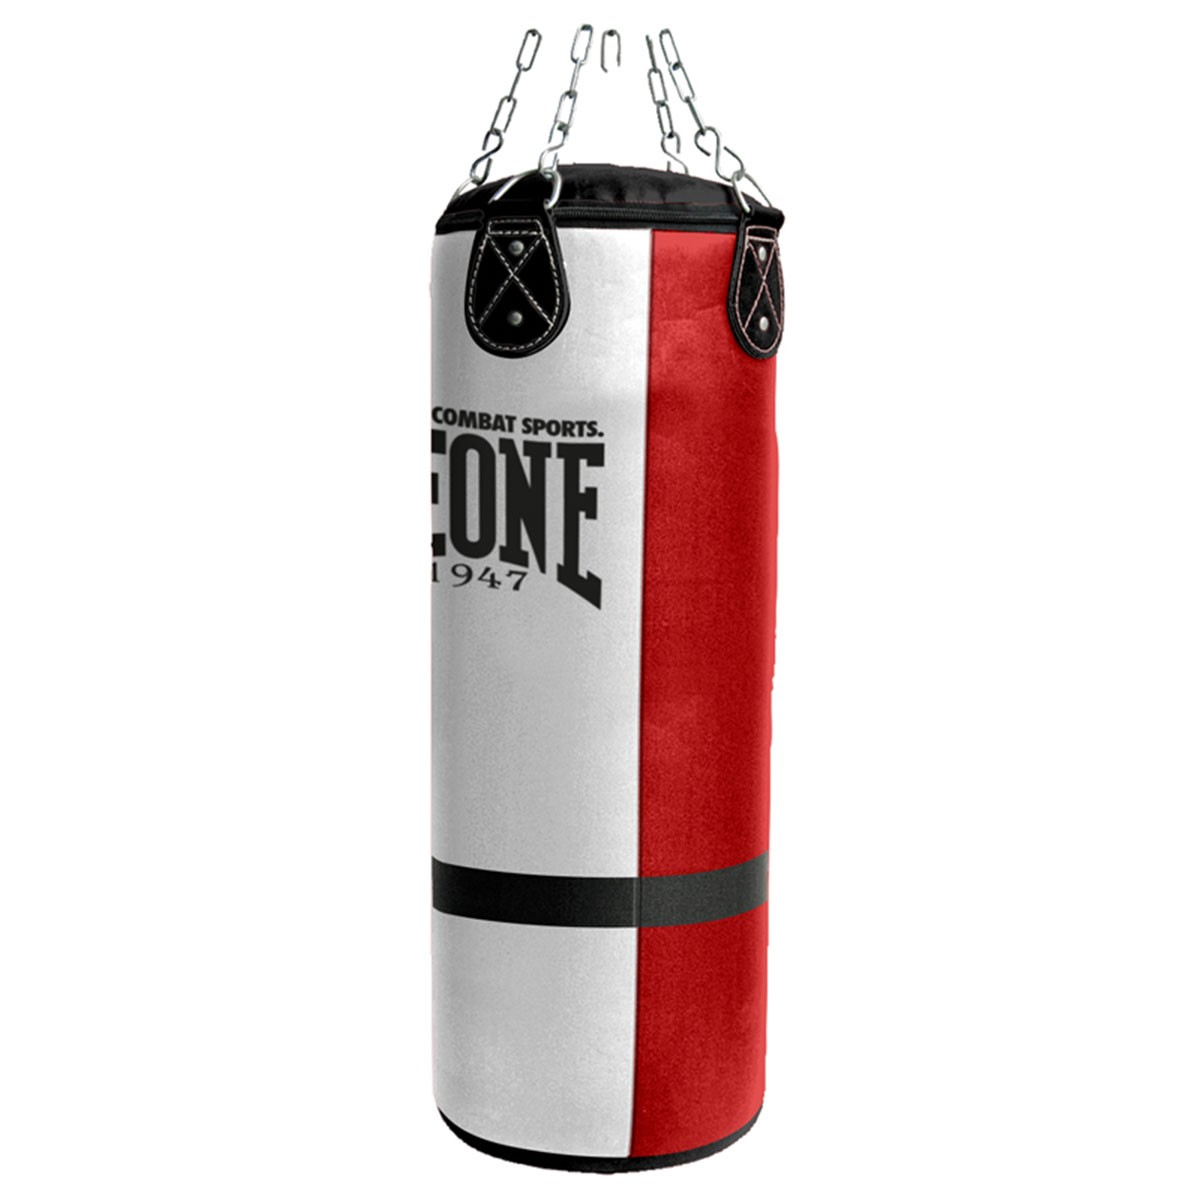 View Our Leone 1947 Heavy Bag King